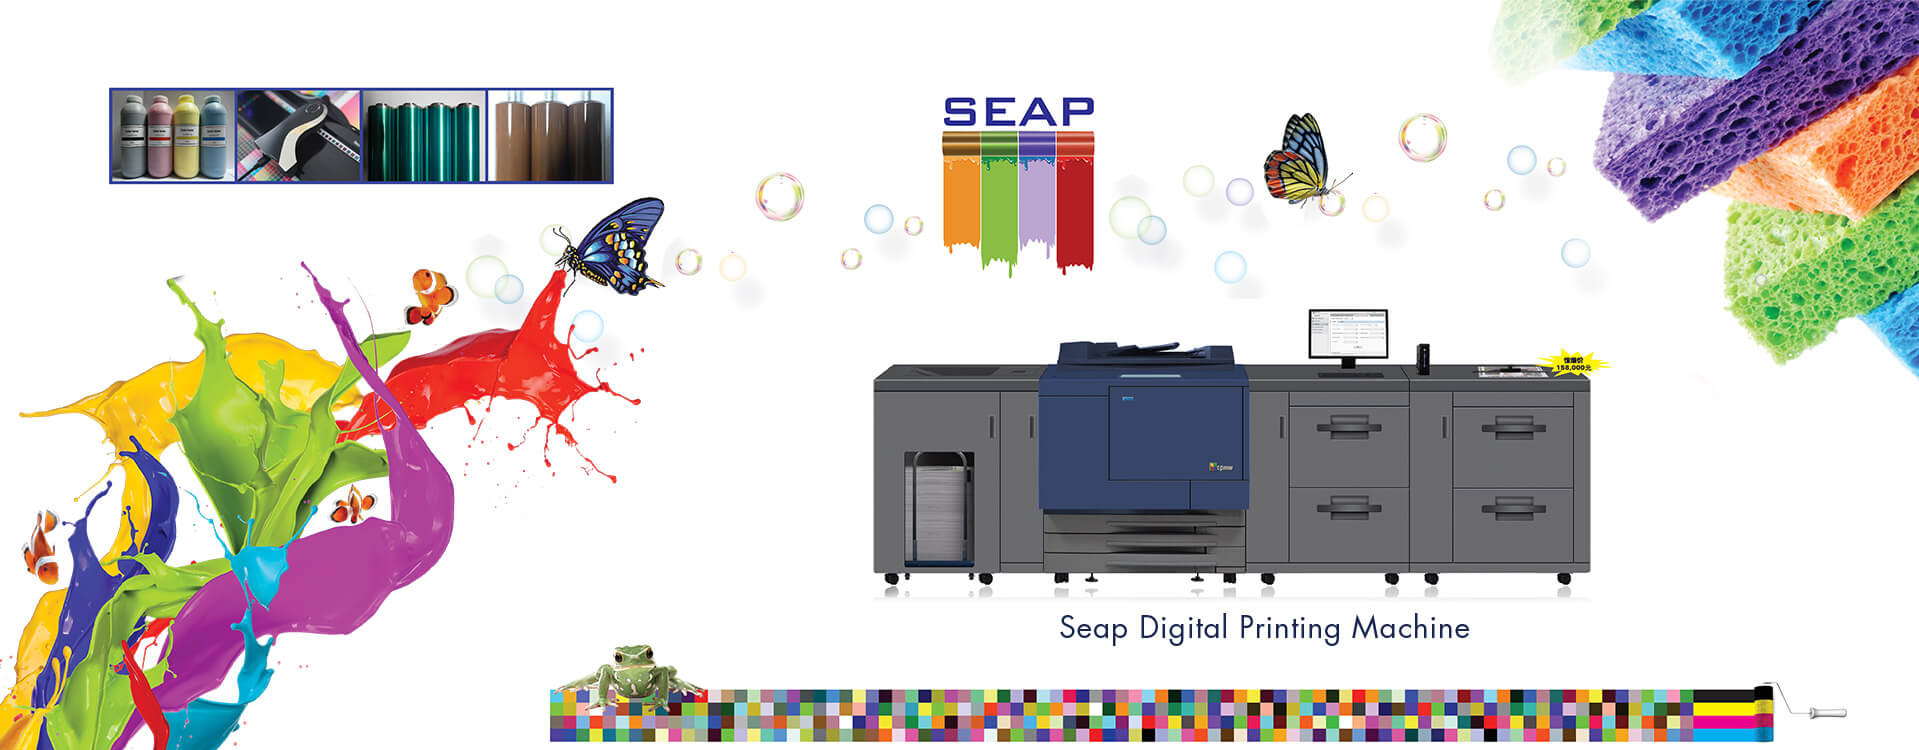 Seap Digital Printing Machine